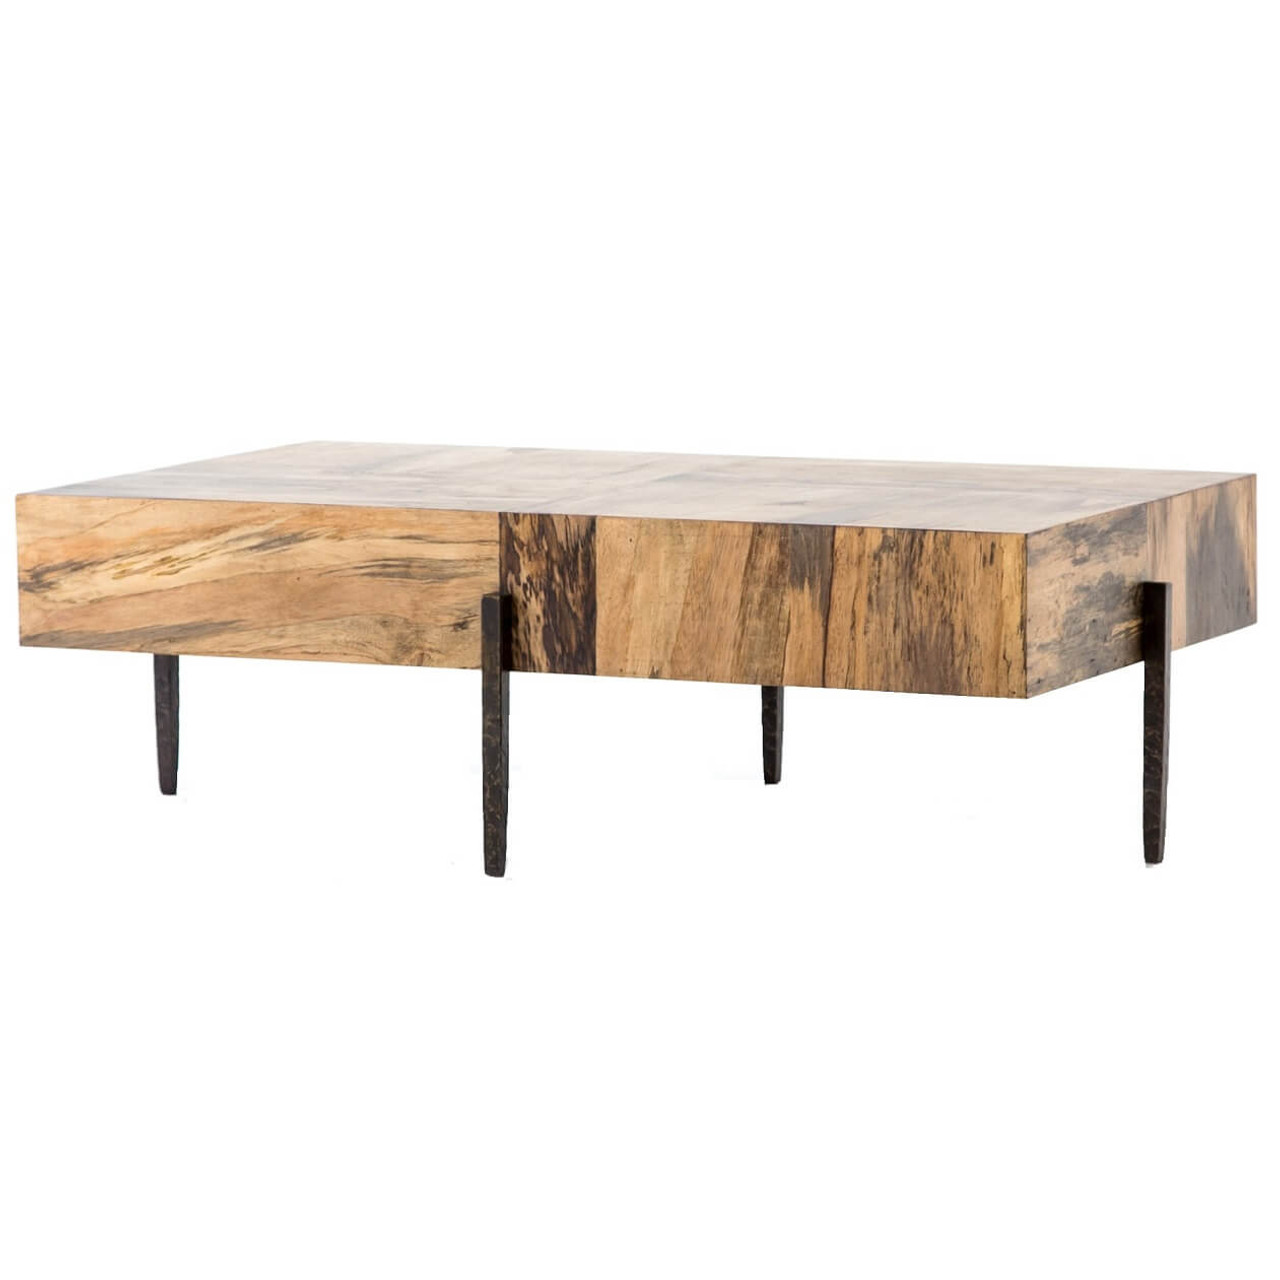 Tremendous Inkas Spalted Primavera Wood Block Coffee Table 52 Ncnpc Chair Design For Home Ncnpcorg